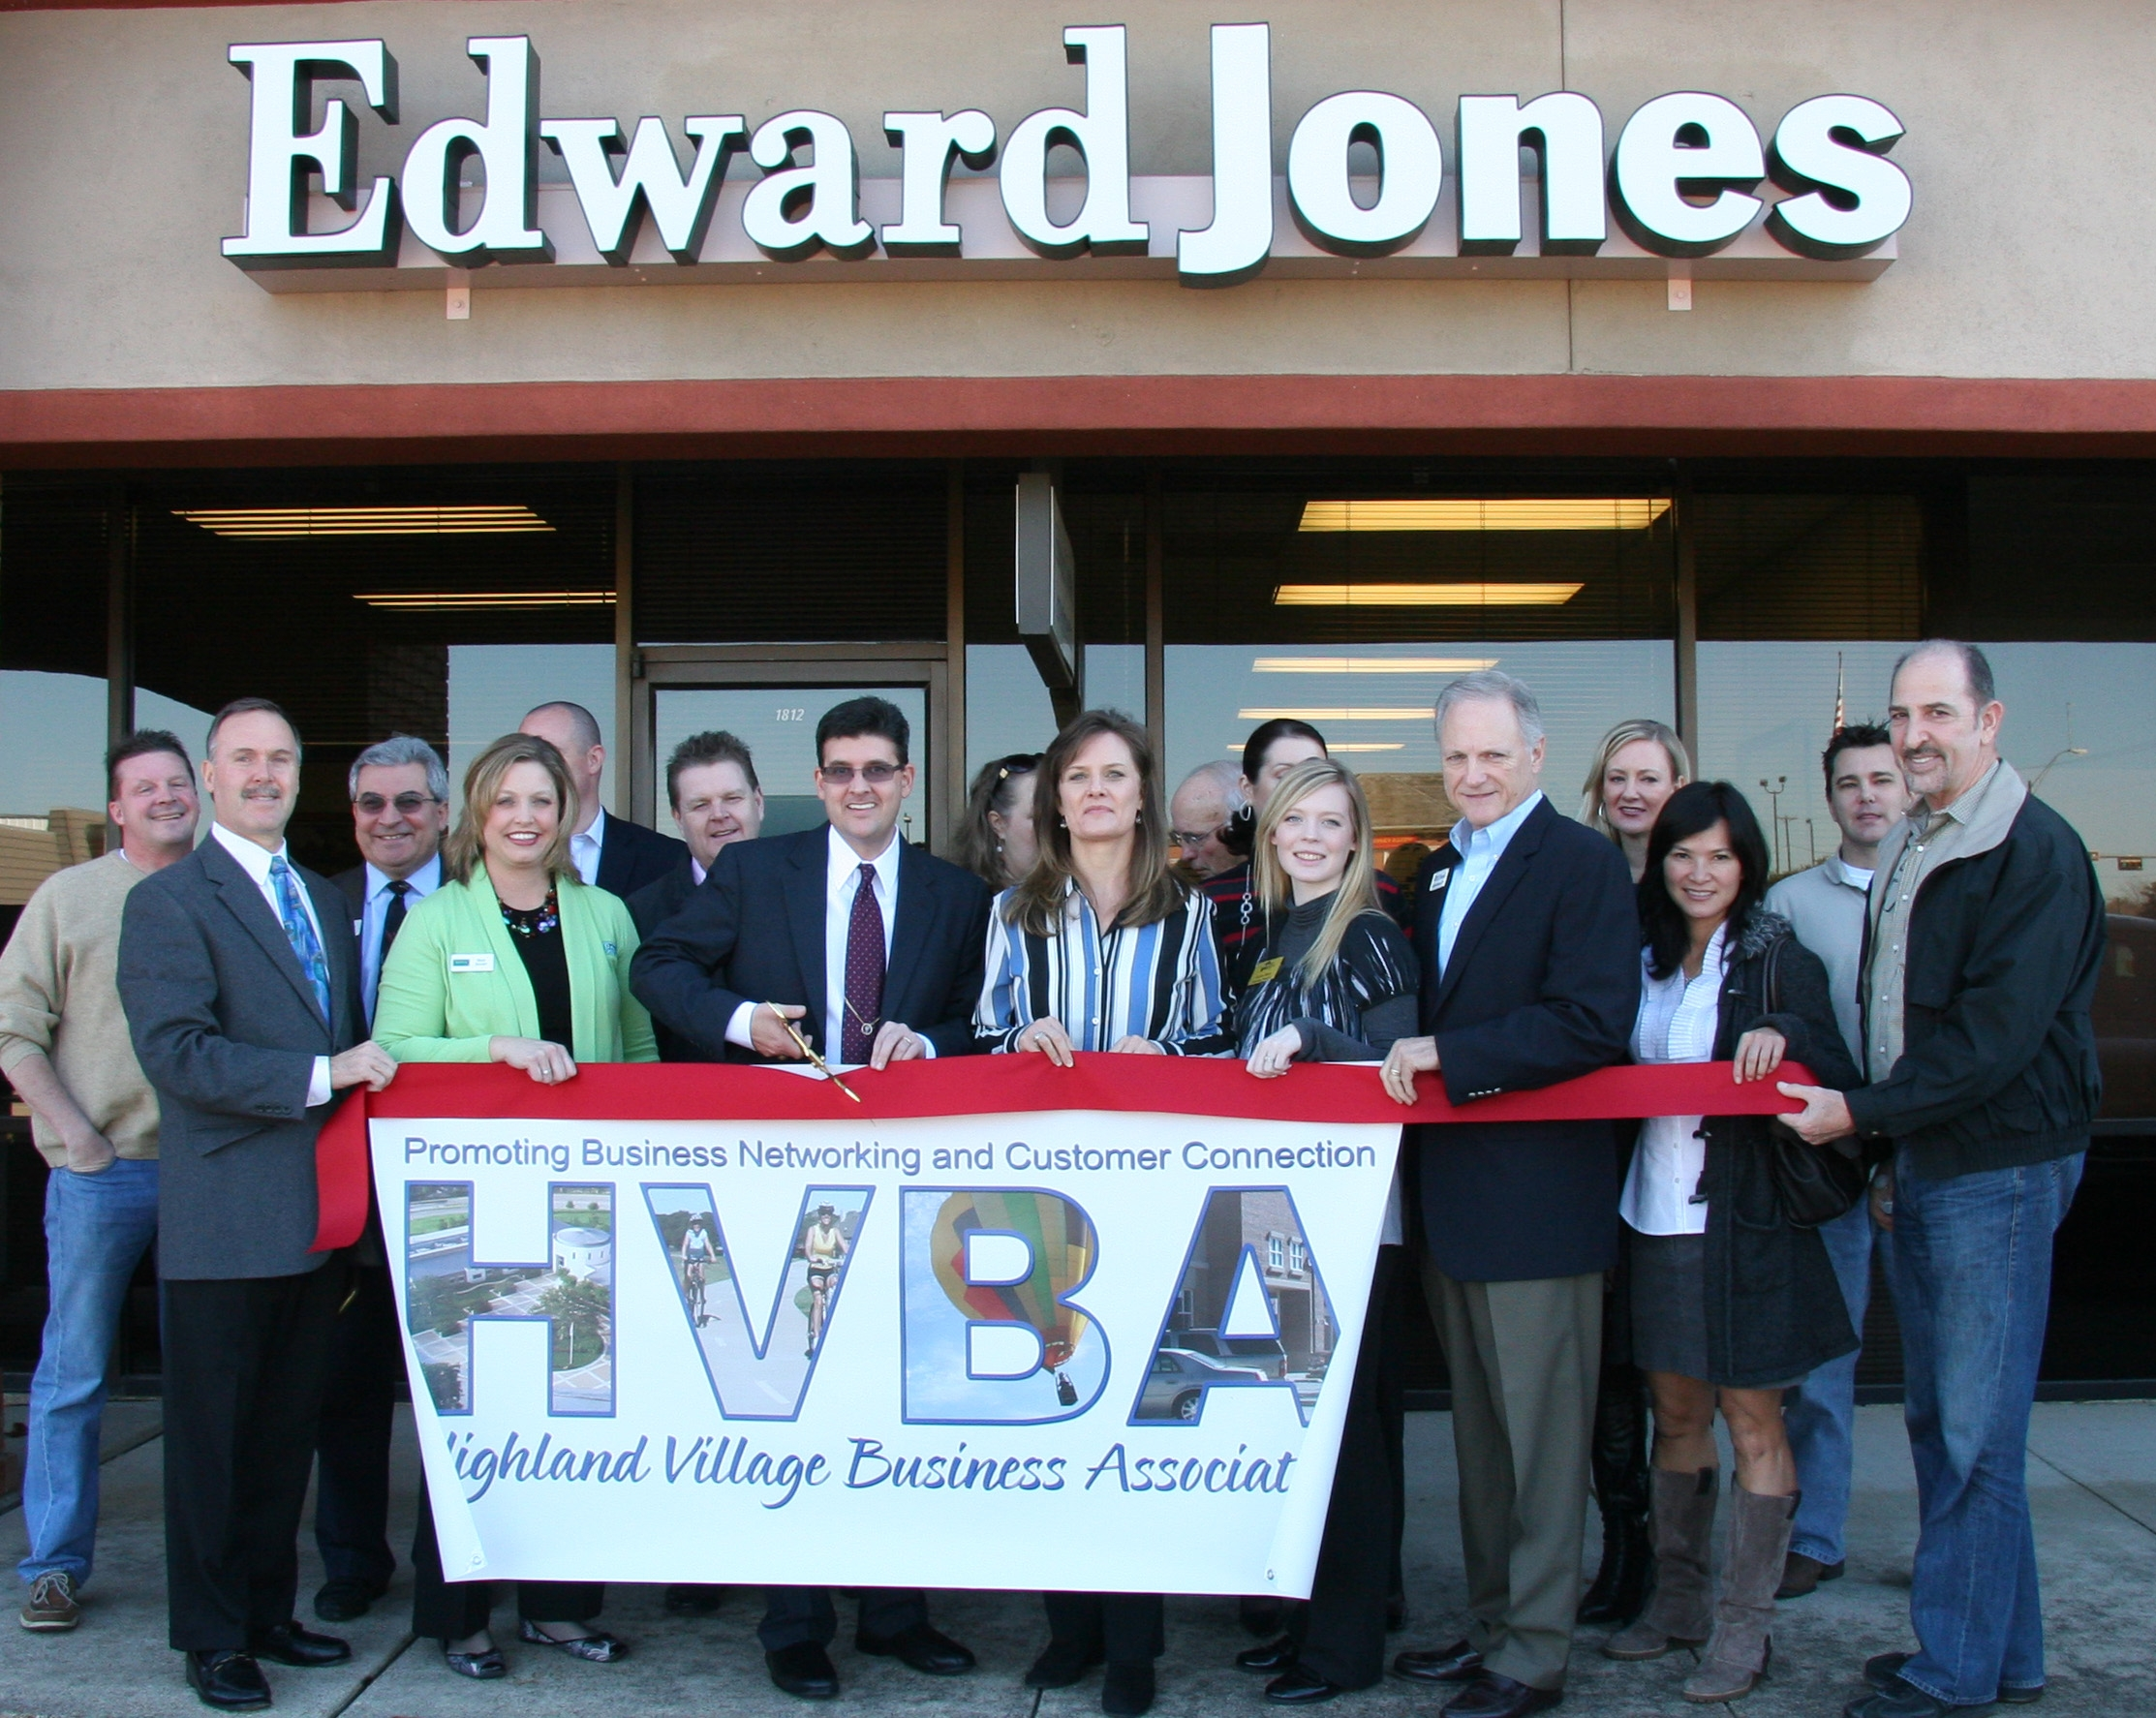 ribbon cutting - Edward Jones - Kyle Lewis